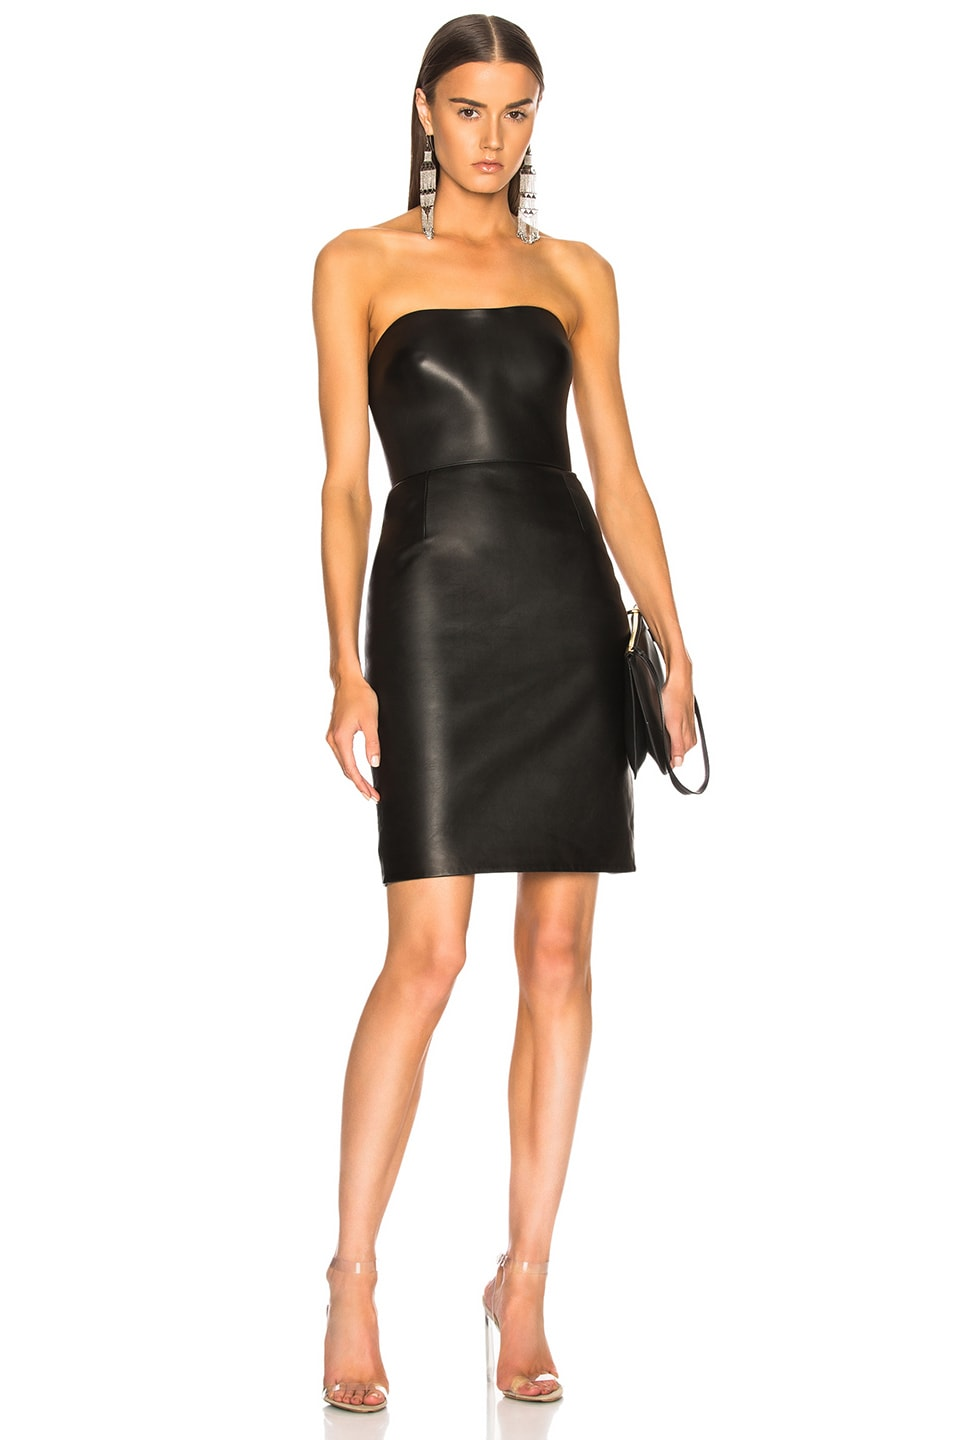 4bf0e264a7d Image 1 of Alexander Wang Leather Bustier Dress in Black